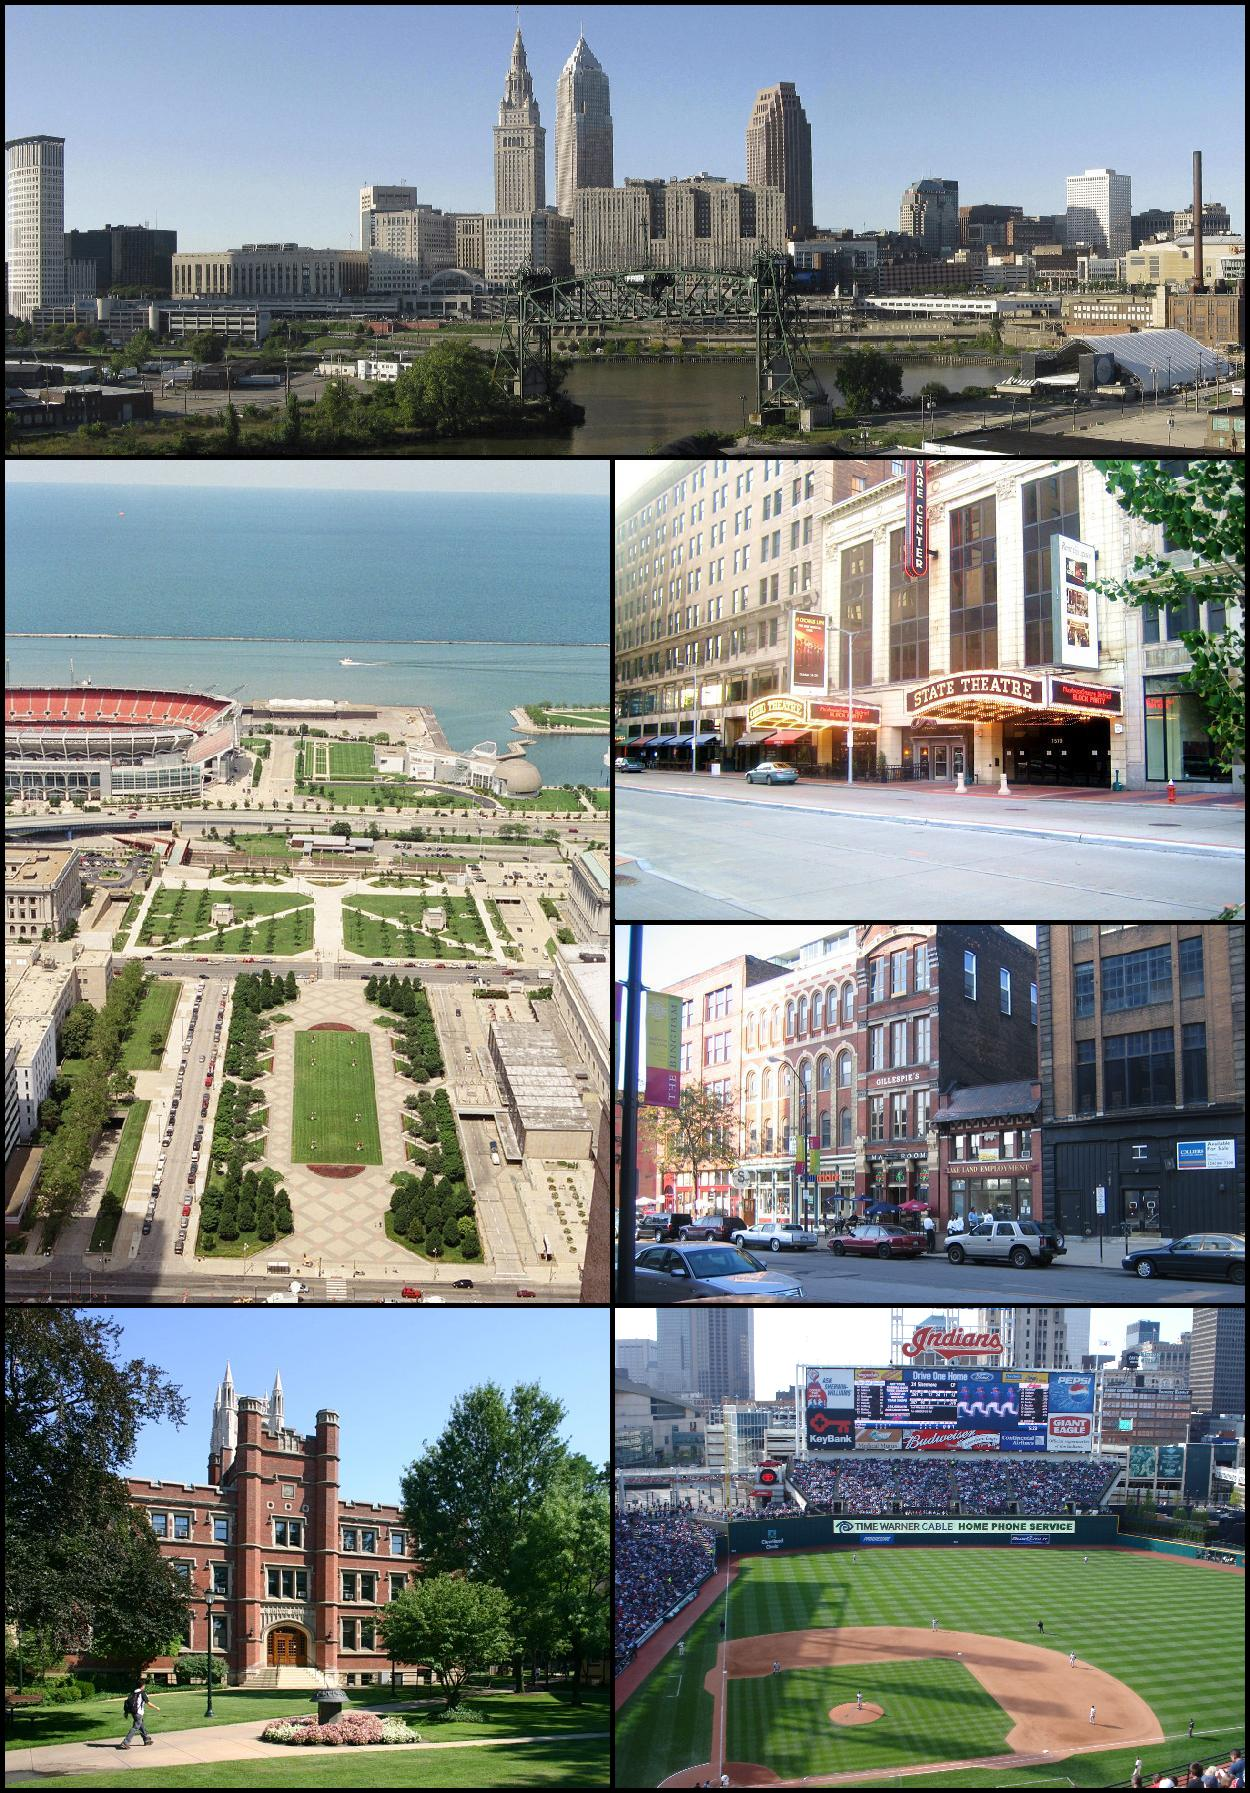 https://upload.wikimedia.org/wikipedia/commons/8/8d/Montage_Cleveland_1.jpg